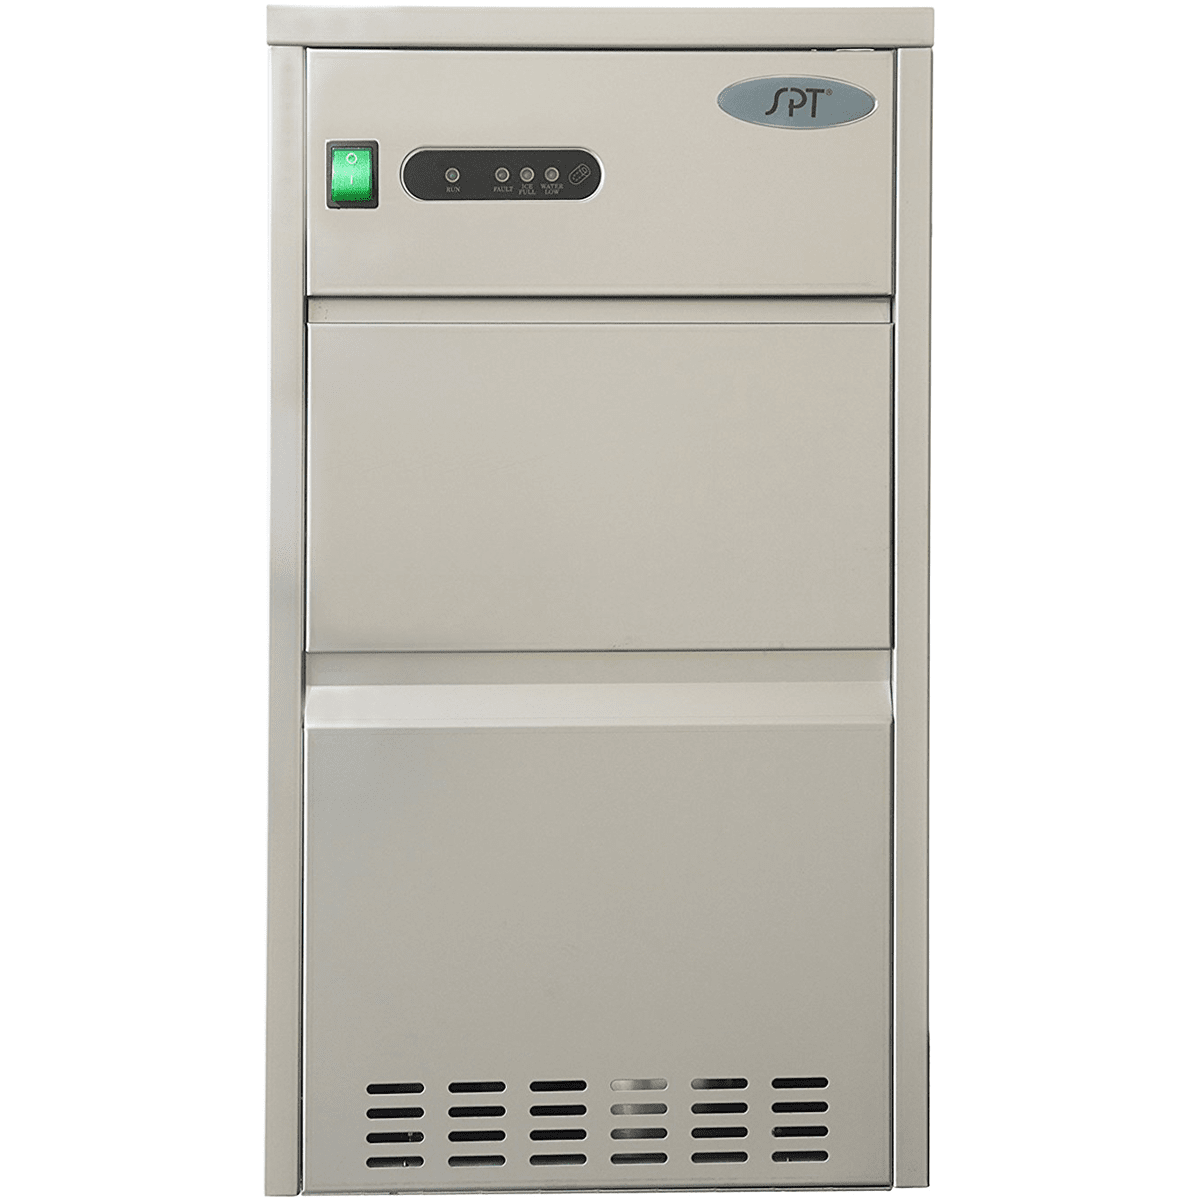 Image of Sunpentown 44 Lb. Automatic Stainless Steel Ice Maker (IM-441C)